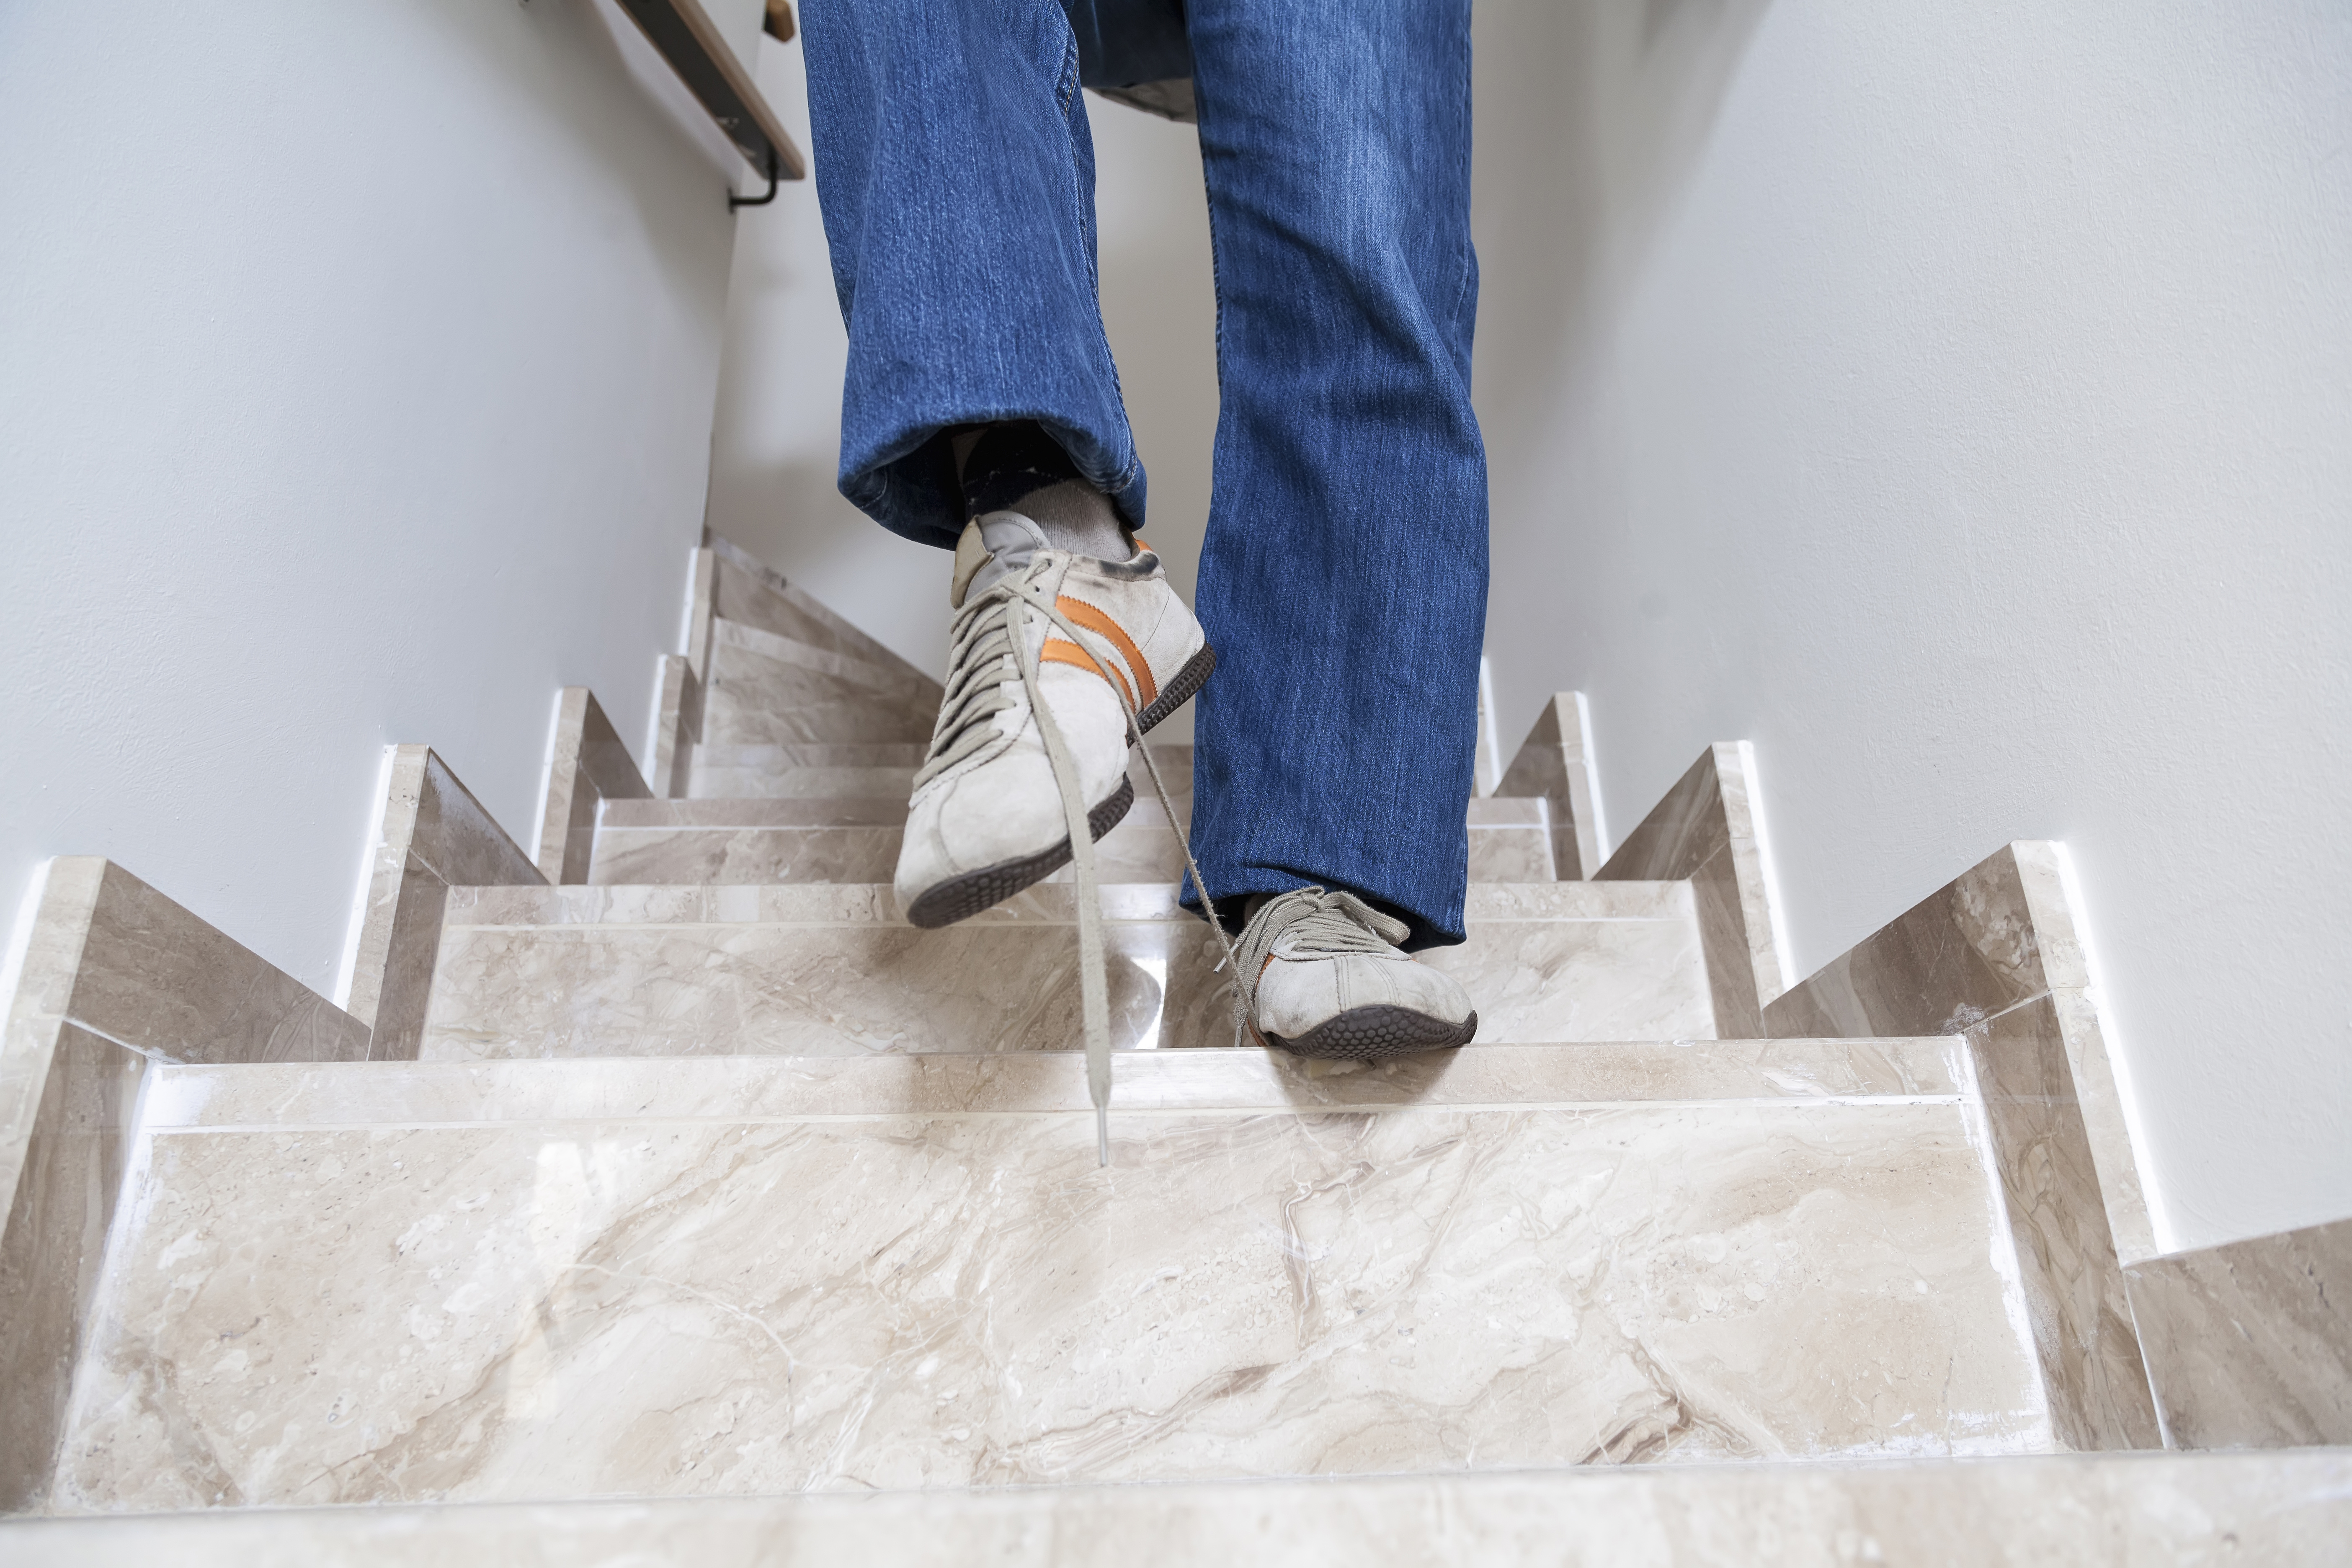 Slip and fall accident lawyer archives huerta law firm for Accident domestique cuisine